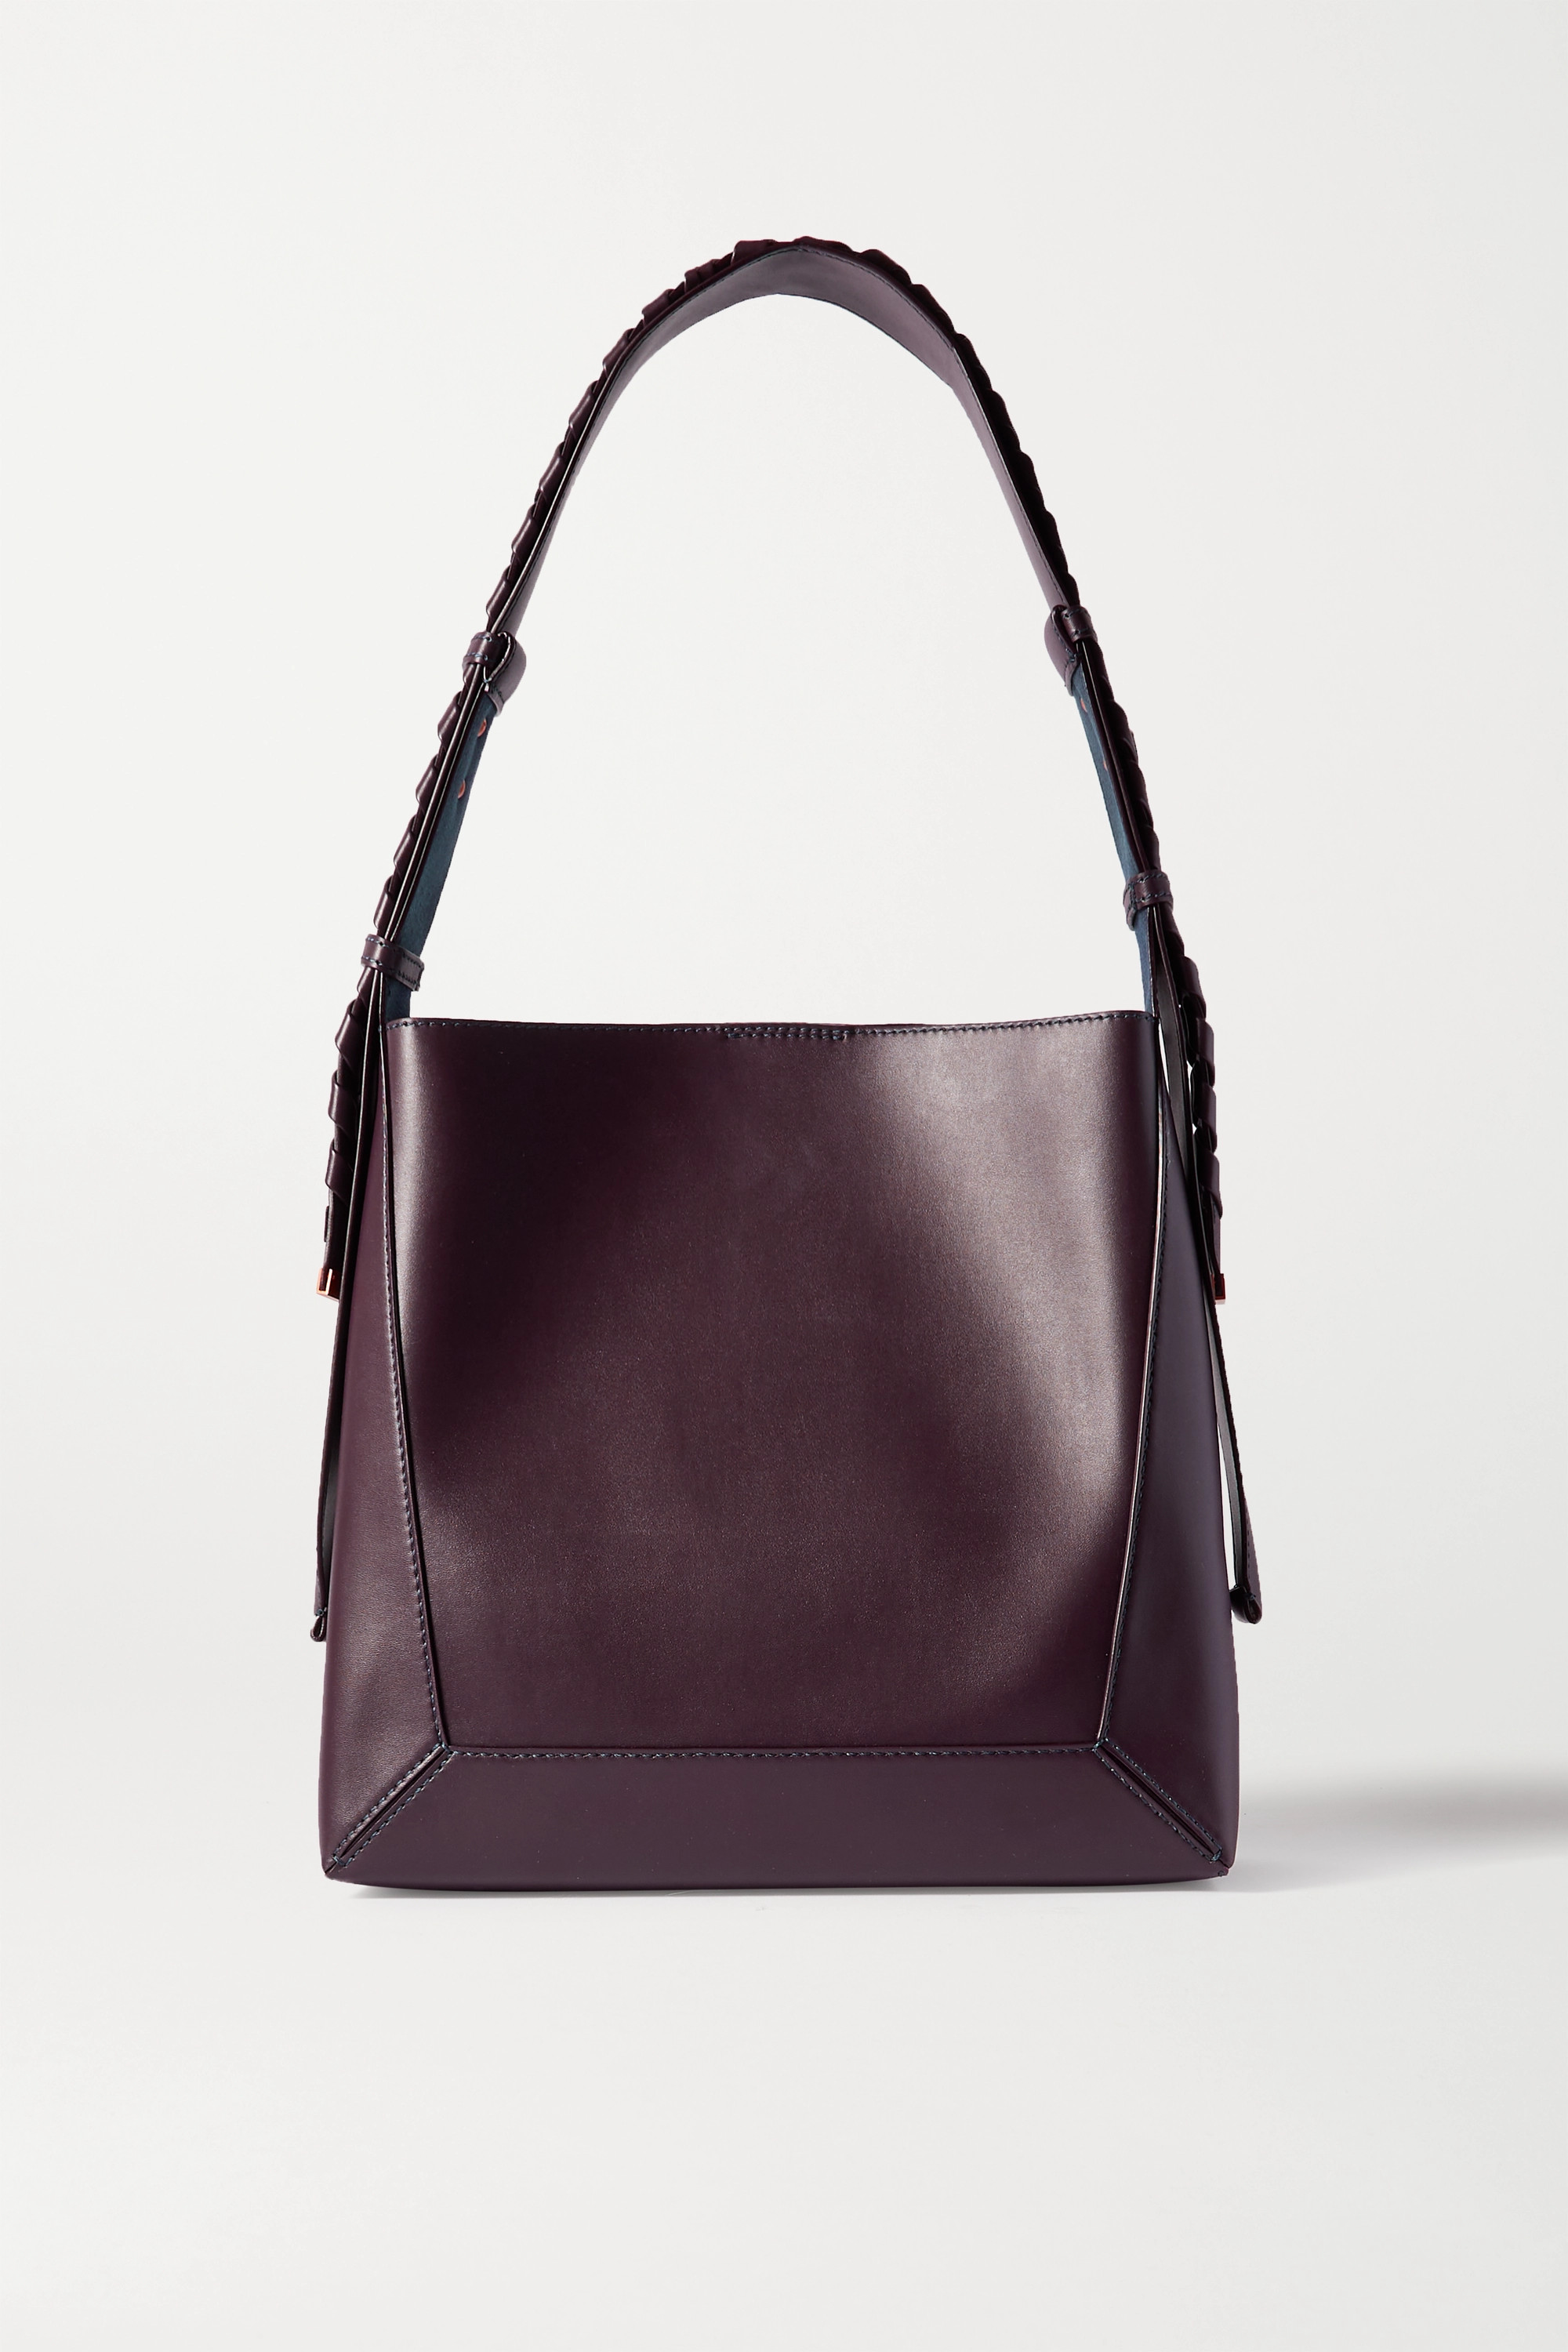 Stella McCartney Vegetarian leather shoulder bag